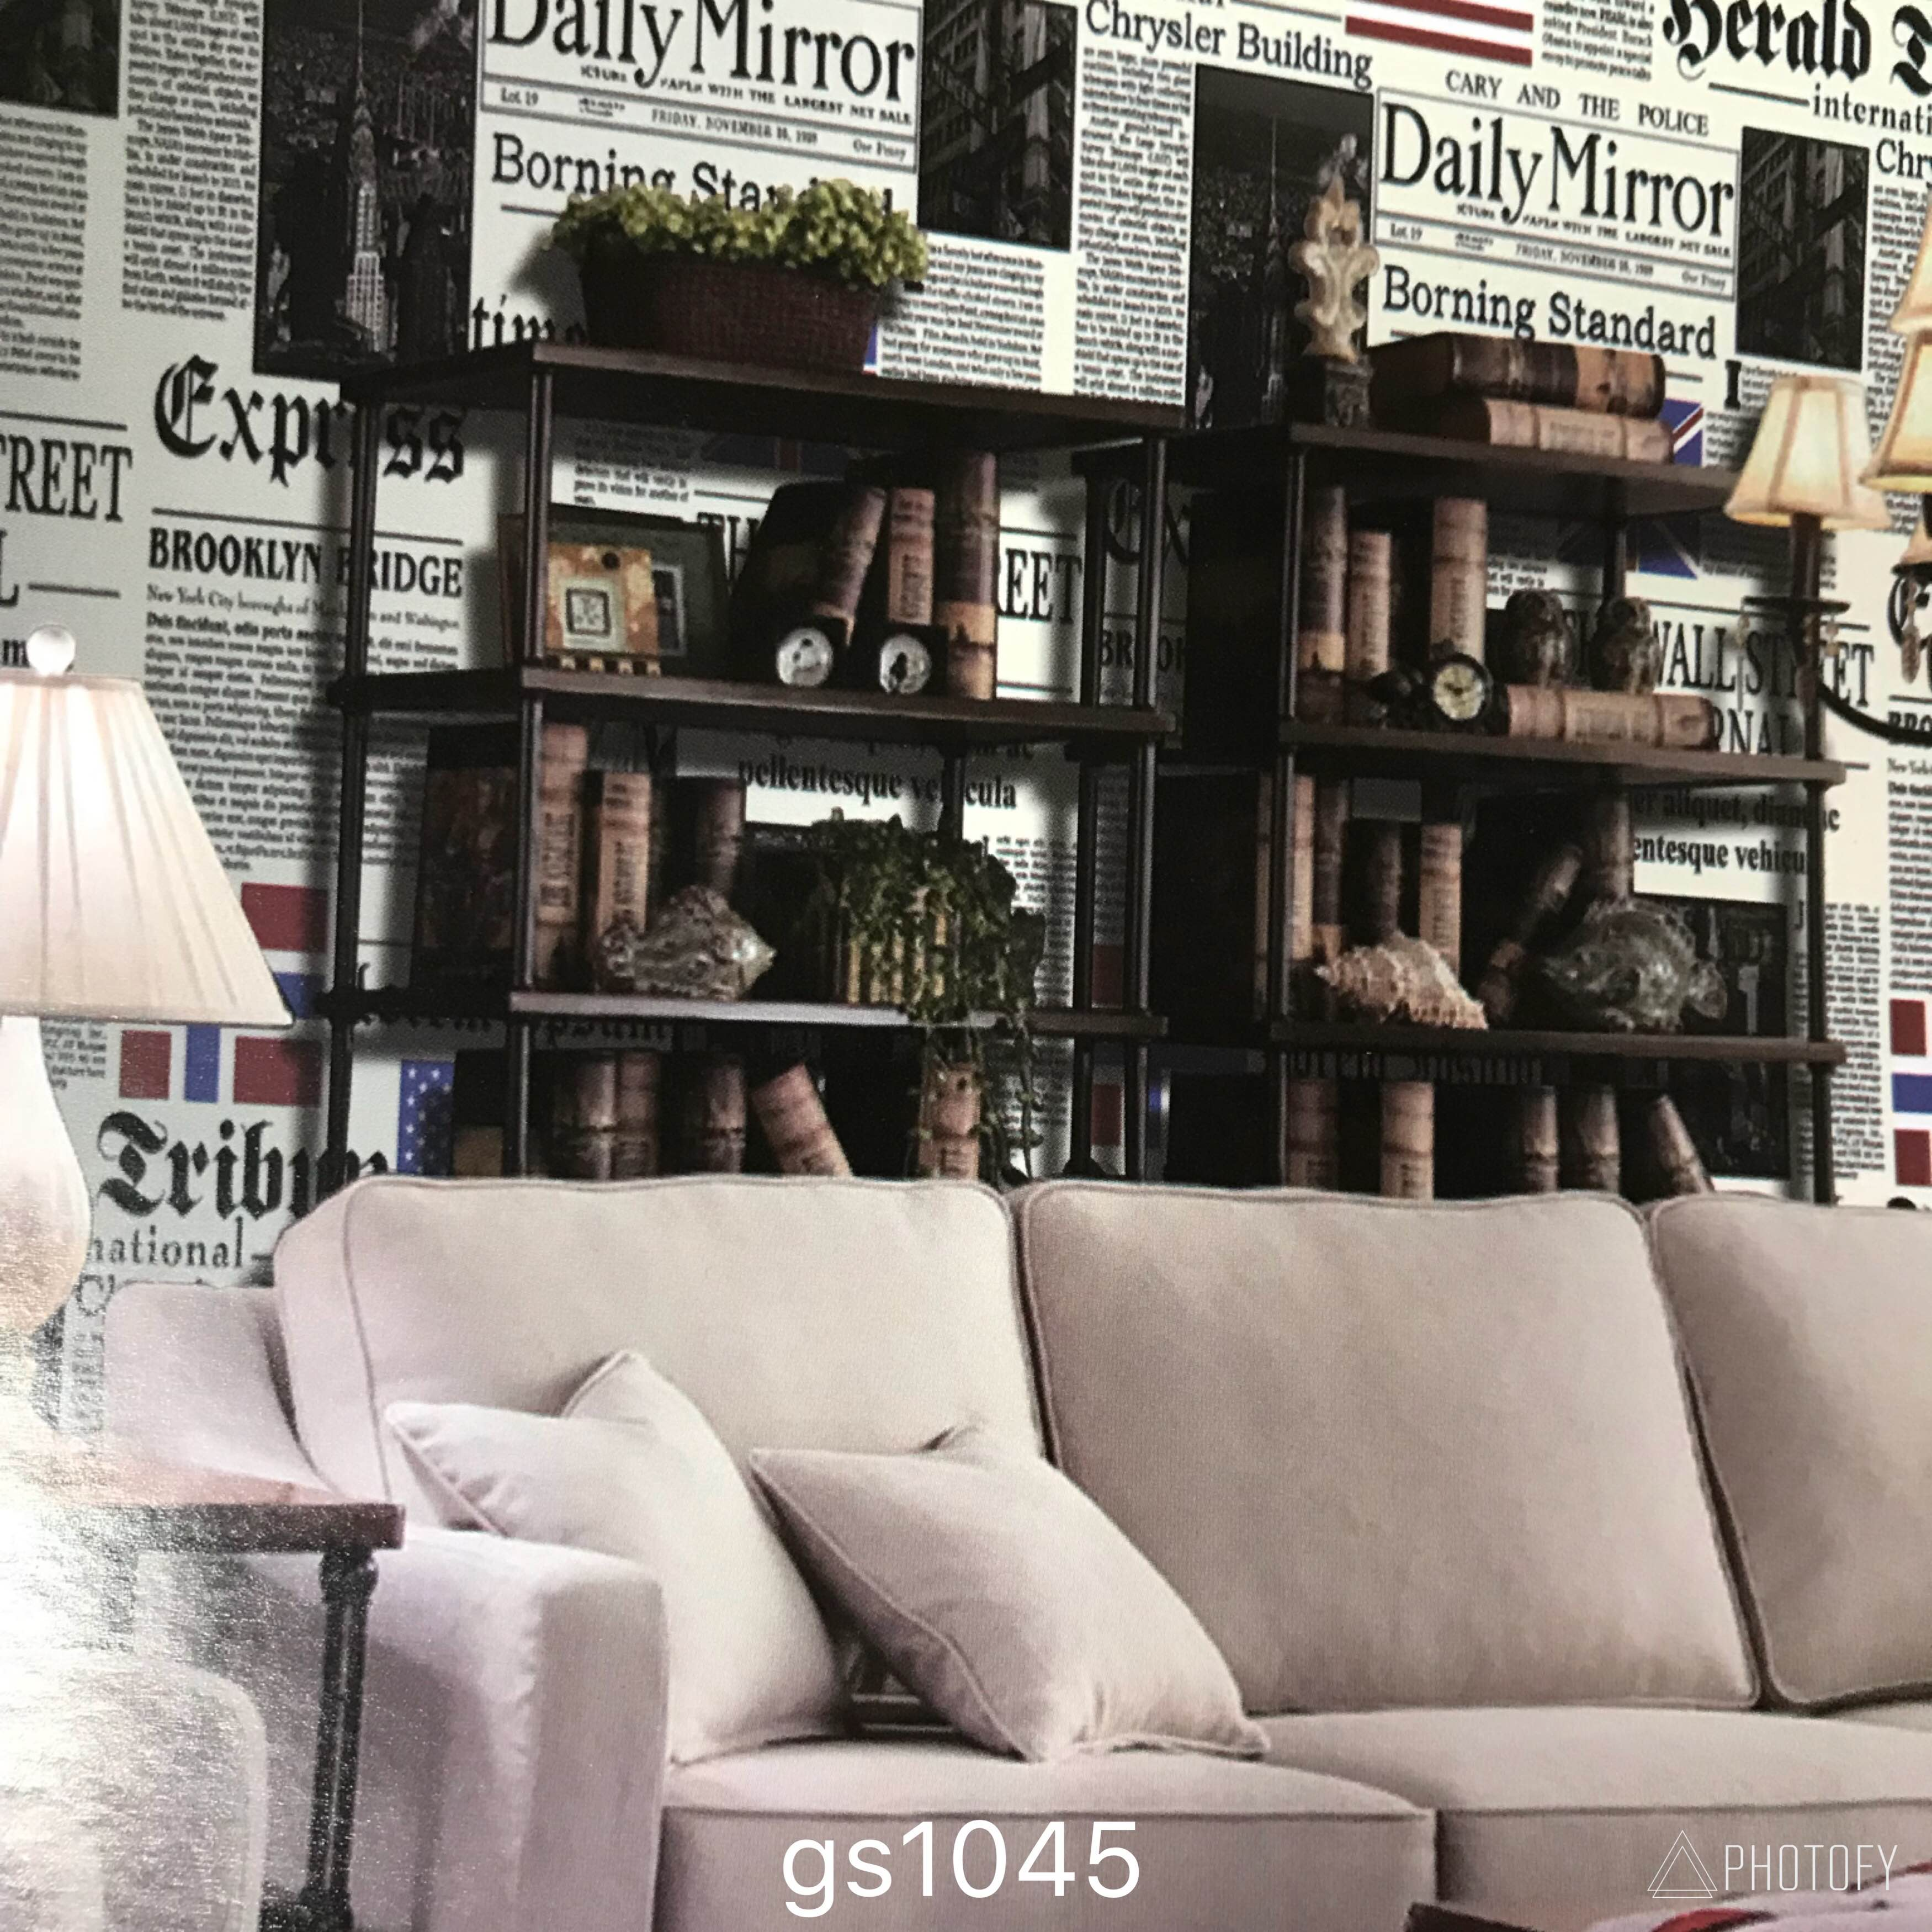 Best Imported Wallpaper supplier in Delhi.   Newspaper Design Wallpaper collection for your Hotels and Dining's  Its new Genesis wallpaper collection from Wall art wallpapers.   To buy call us  Wallparadise/ Genesis wallpaper collection Suplier in  Delhi.